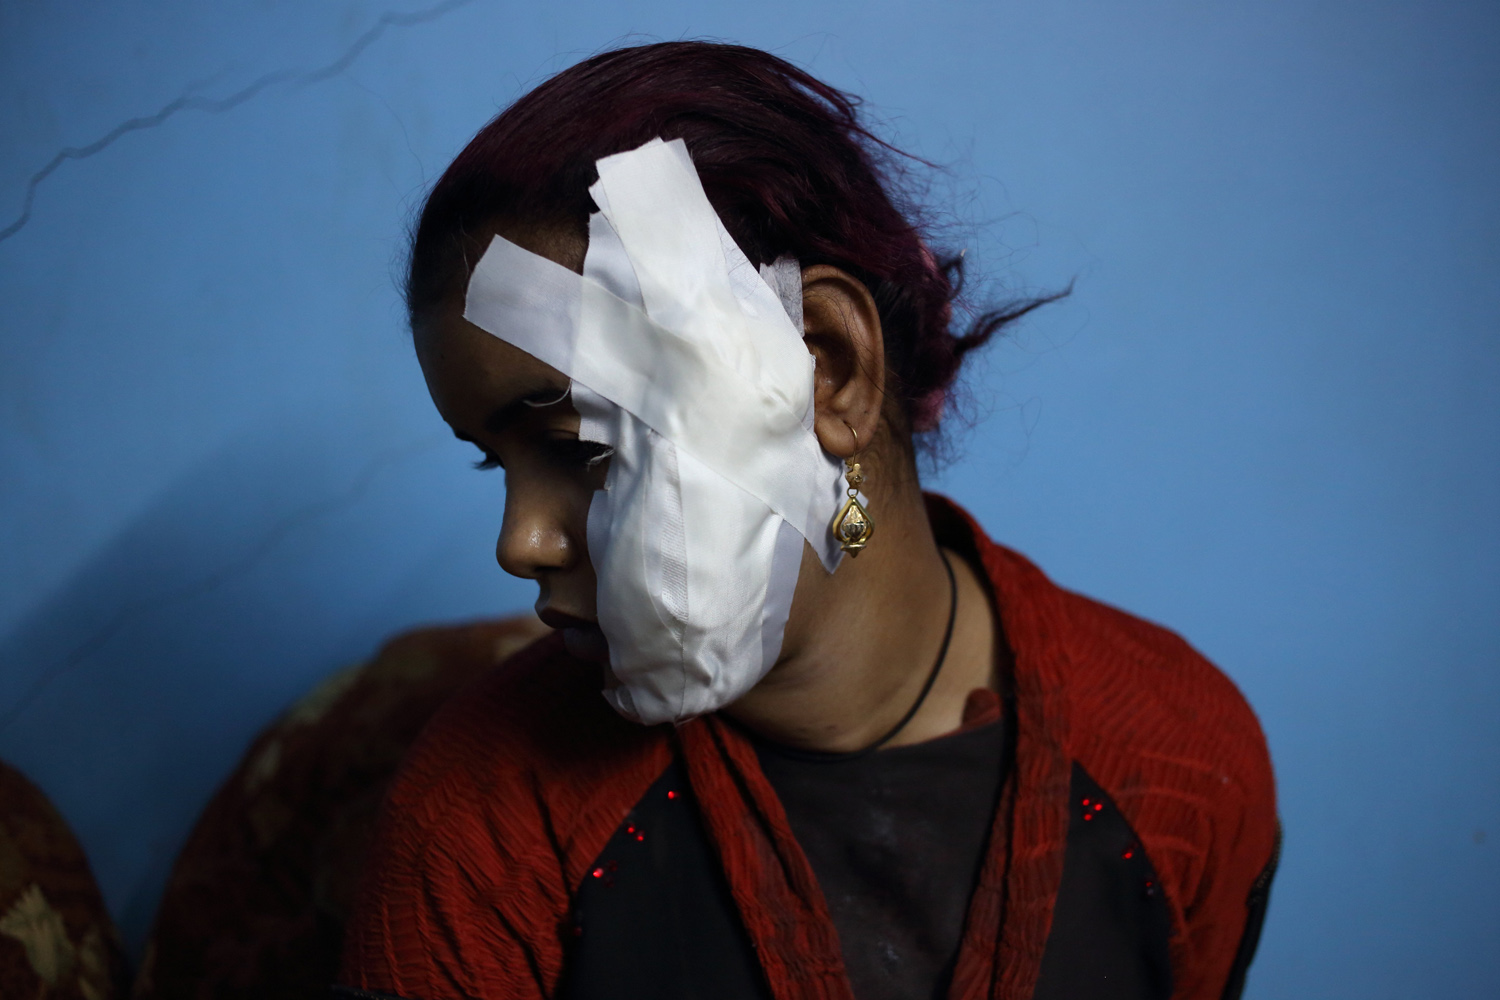 Apr. 6, 2014. Amira Arafa, who was injured Saturday during clashes in Aswan, recovers in a relative's house, as her own was damaged in fighting in the southern city of Aswan, Egypt.